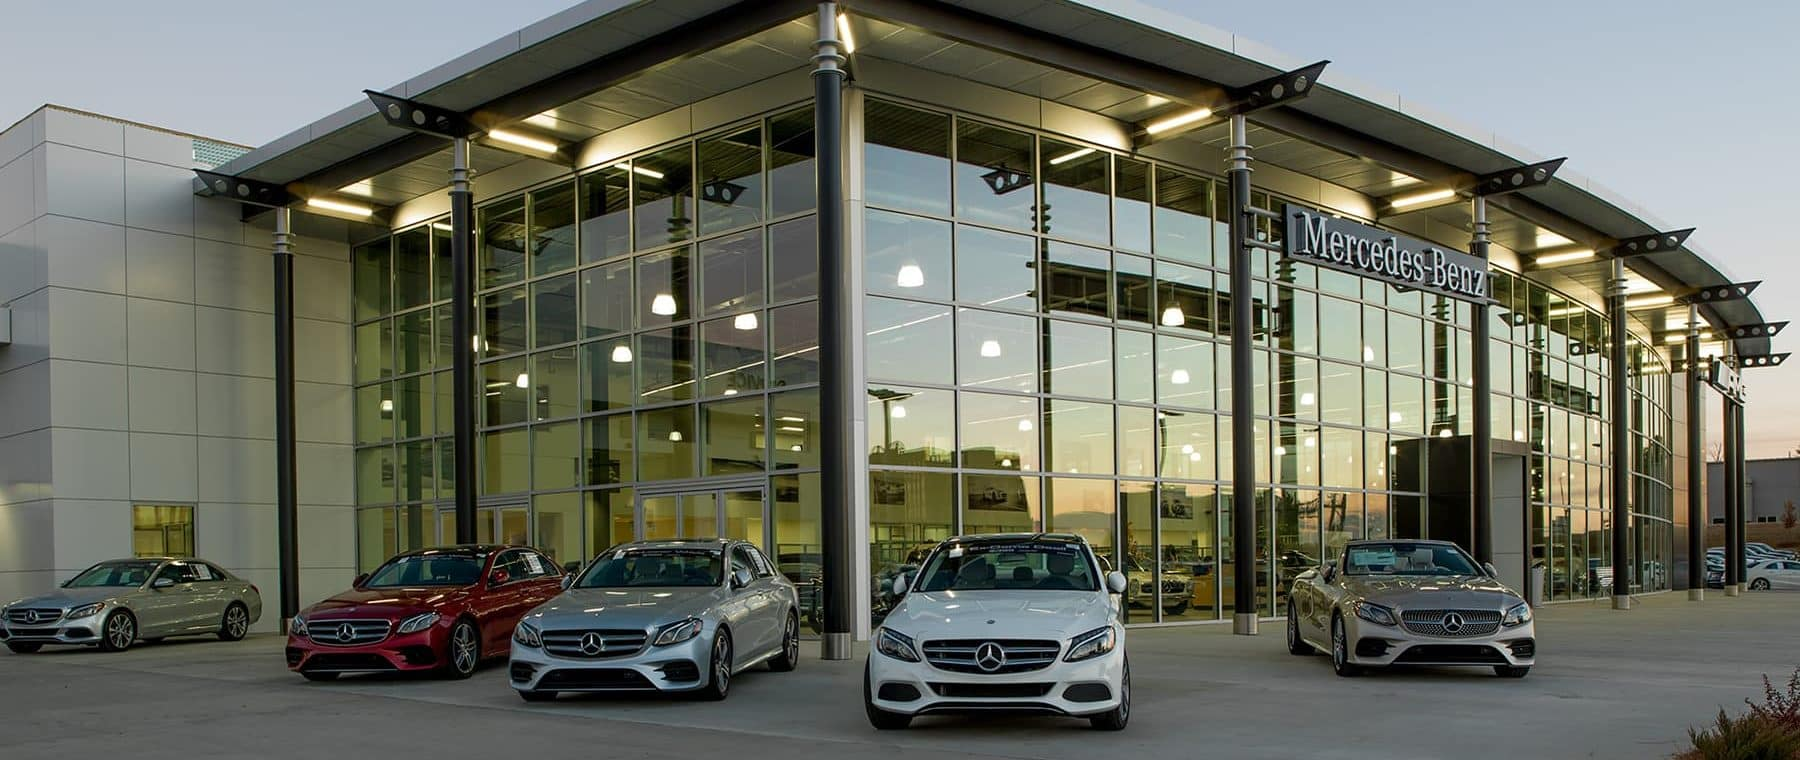 Mercedes benz of jackson mississippi luxury car dealer for Mercedes benz financial payment address